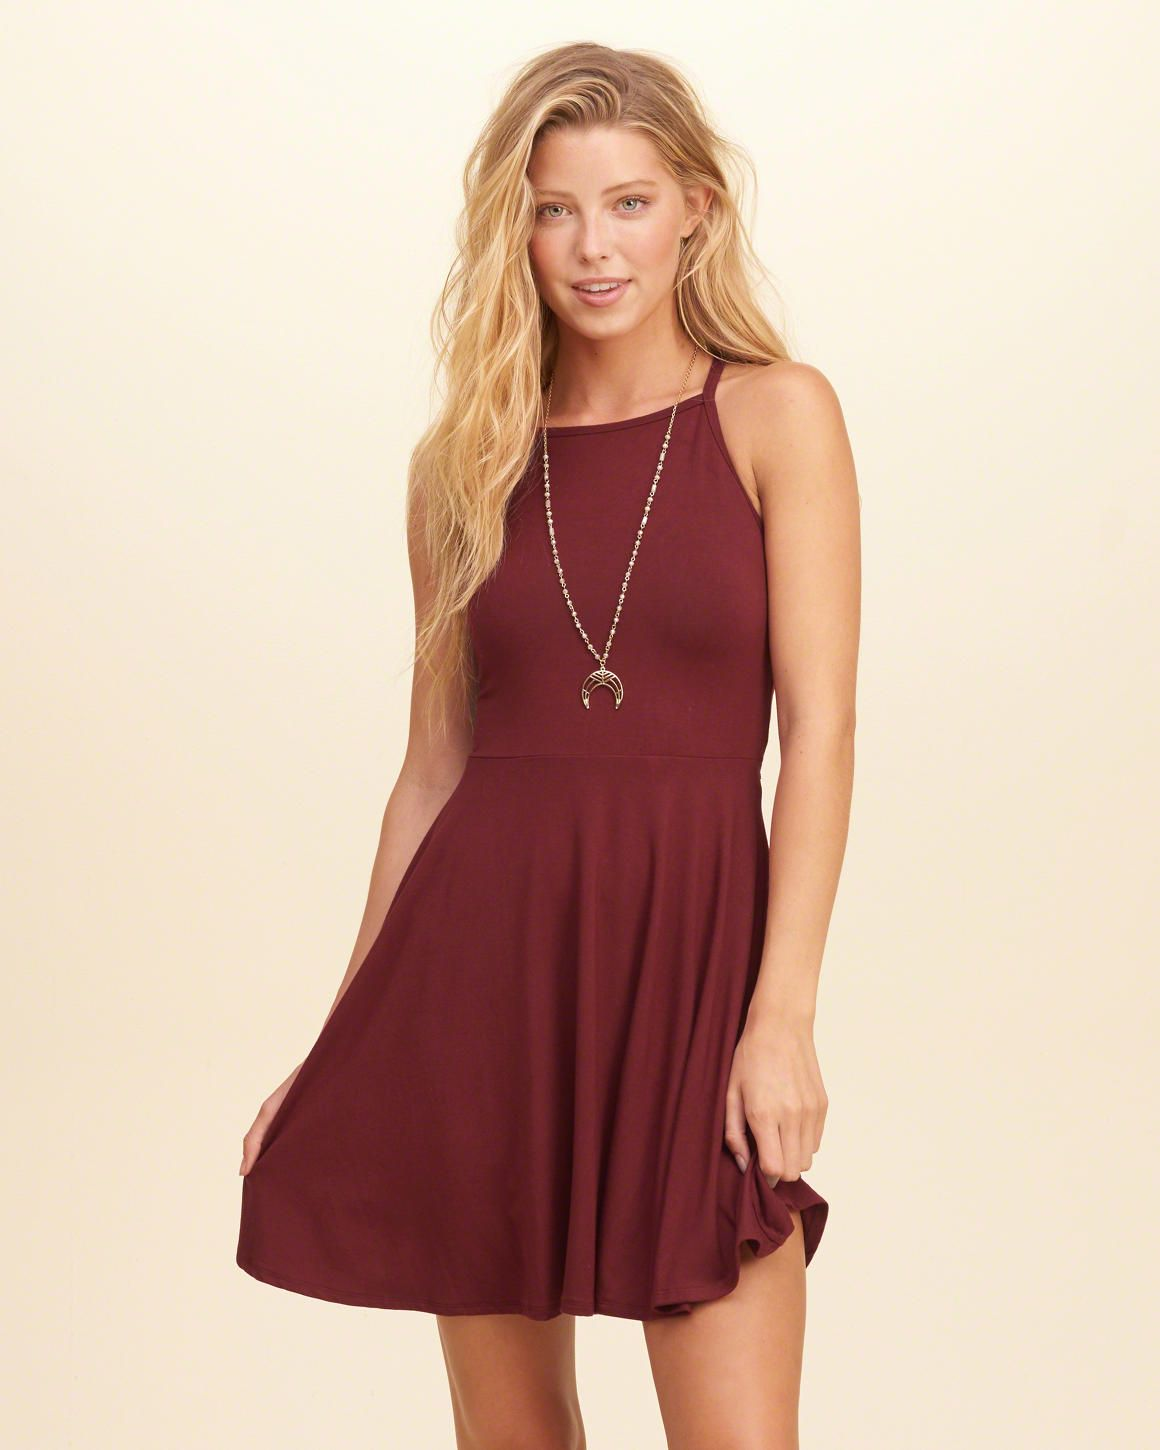 a1ee24f121 A super cute fit-and-flare dress with a high neck